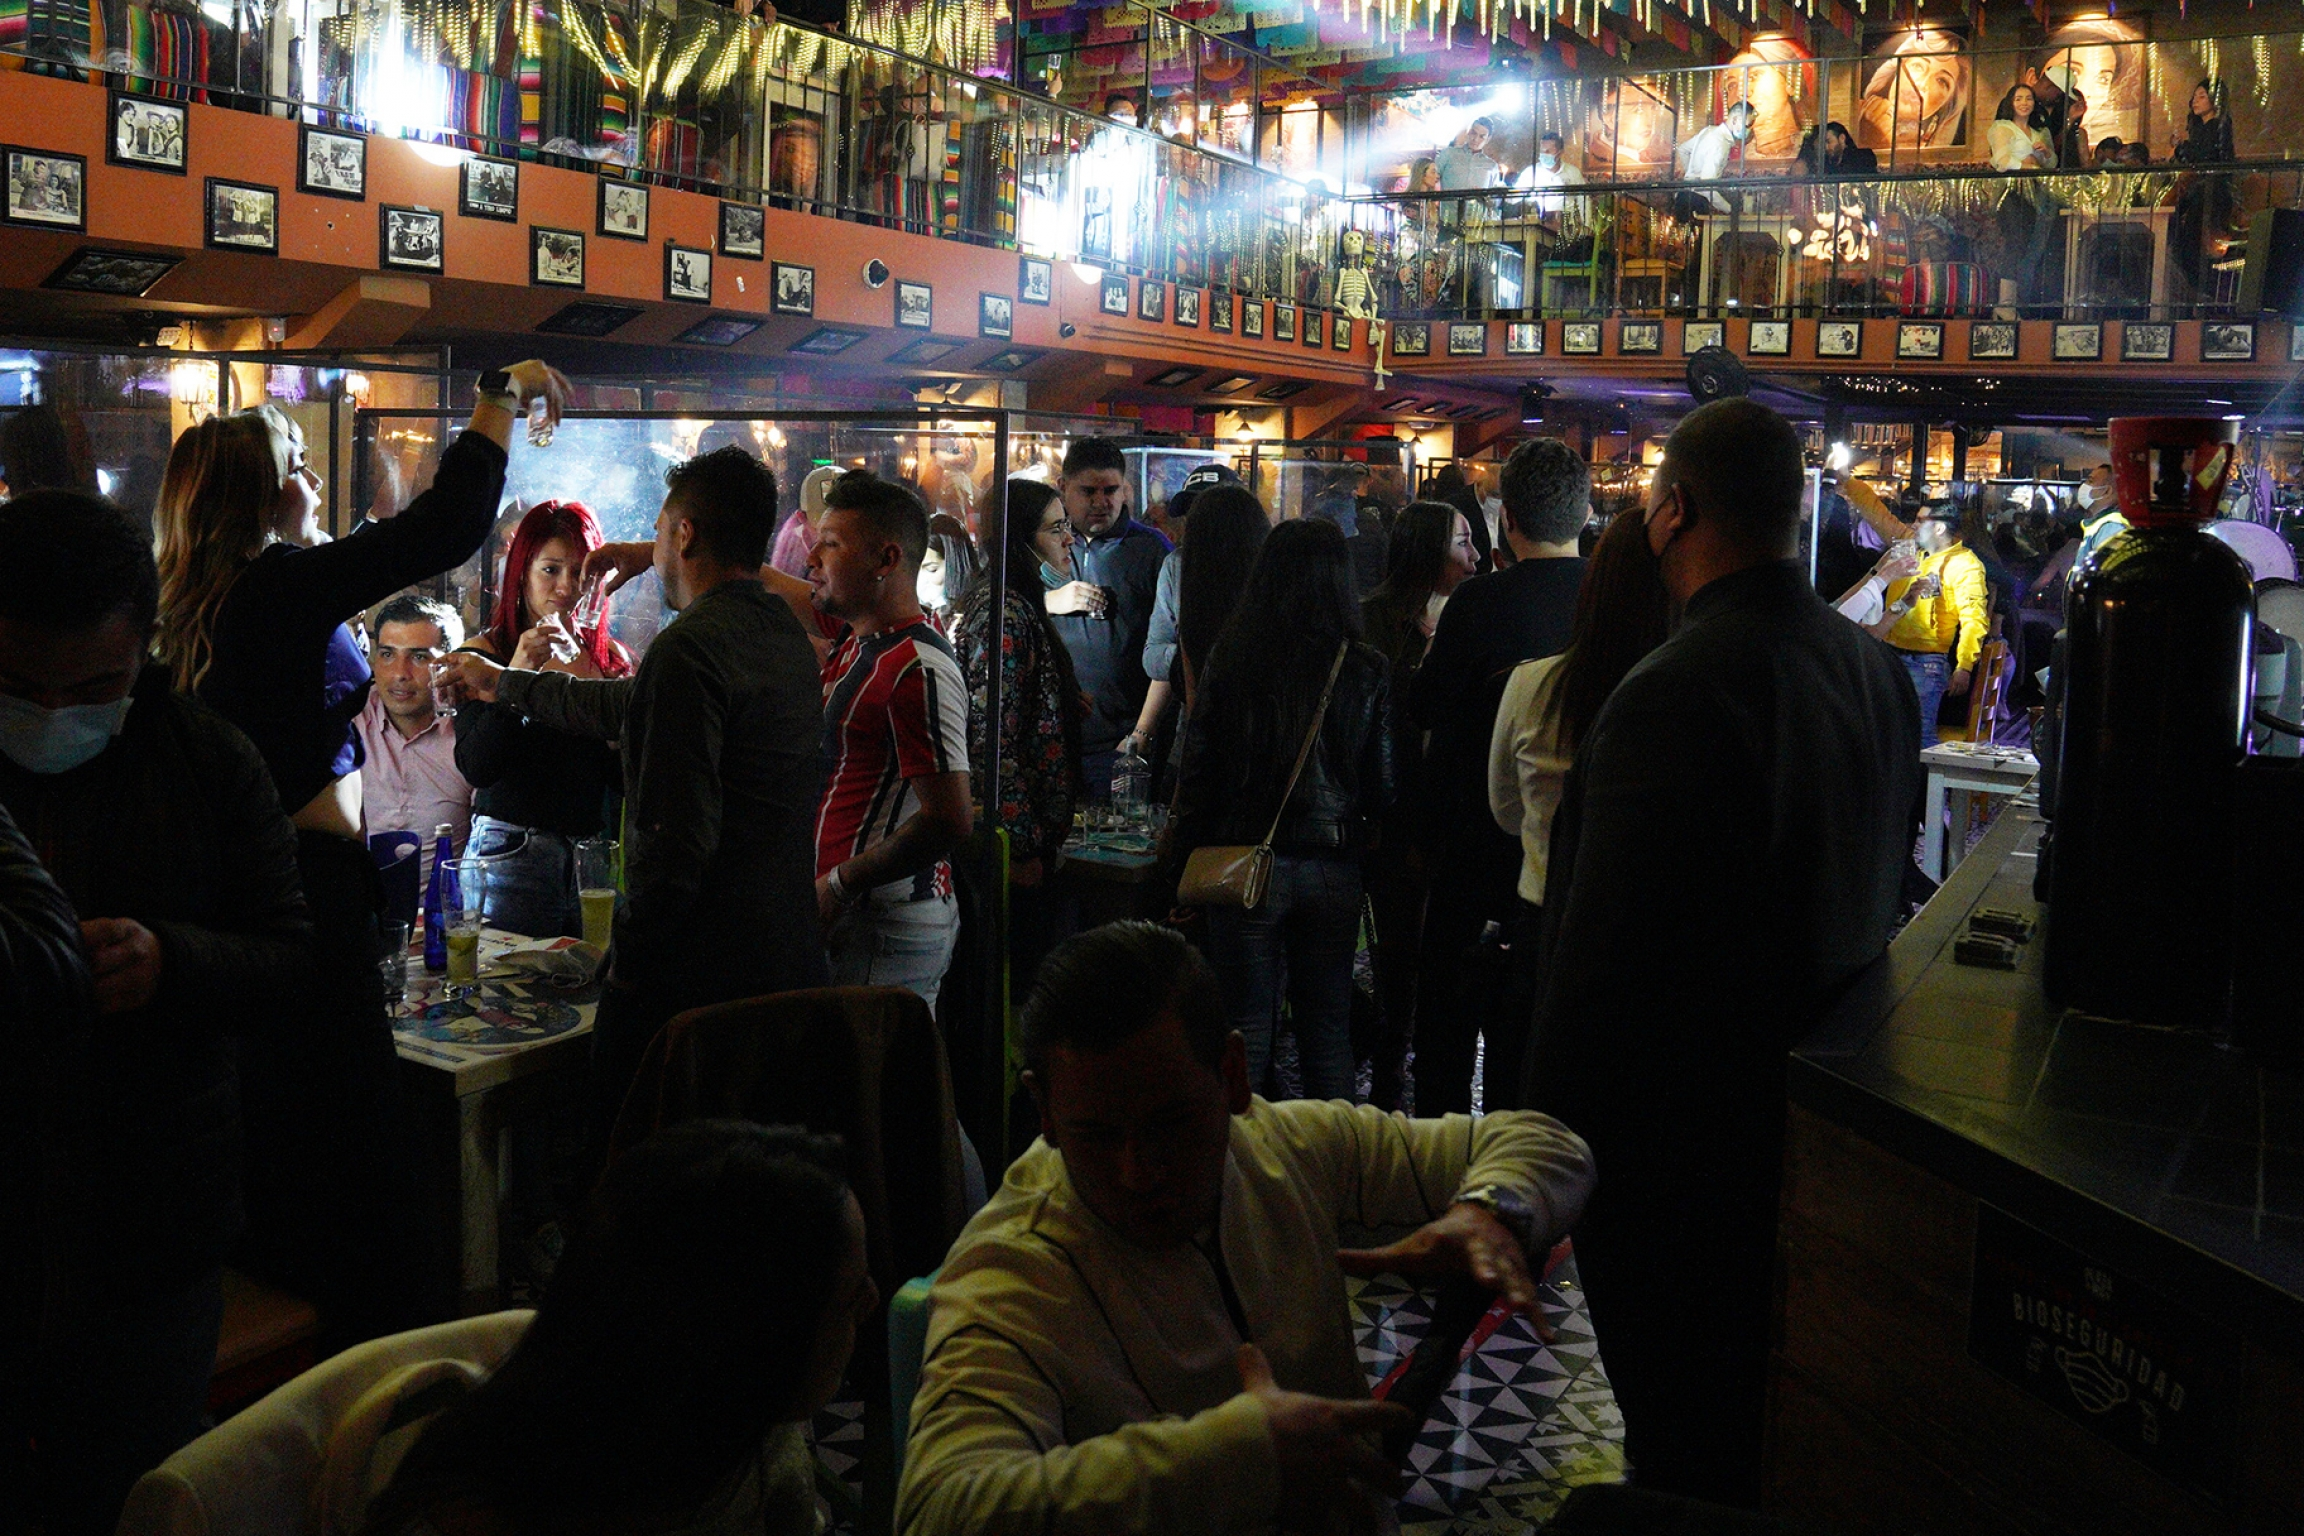 For nightclubs like Plaza MX, being able to open until late at night makes the difference between making profits or operating at a loss.